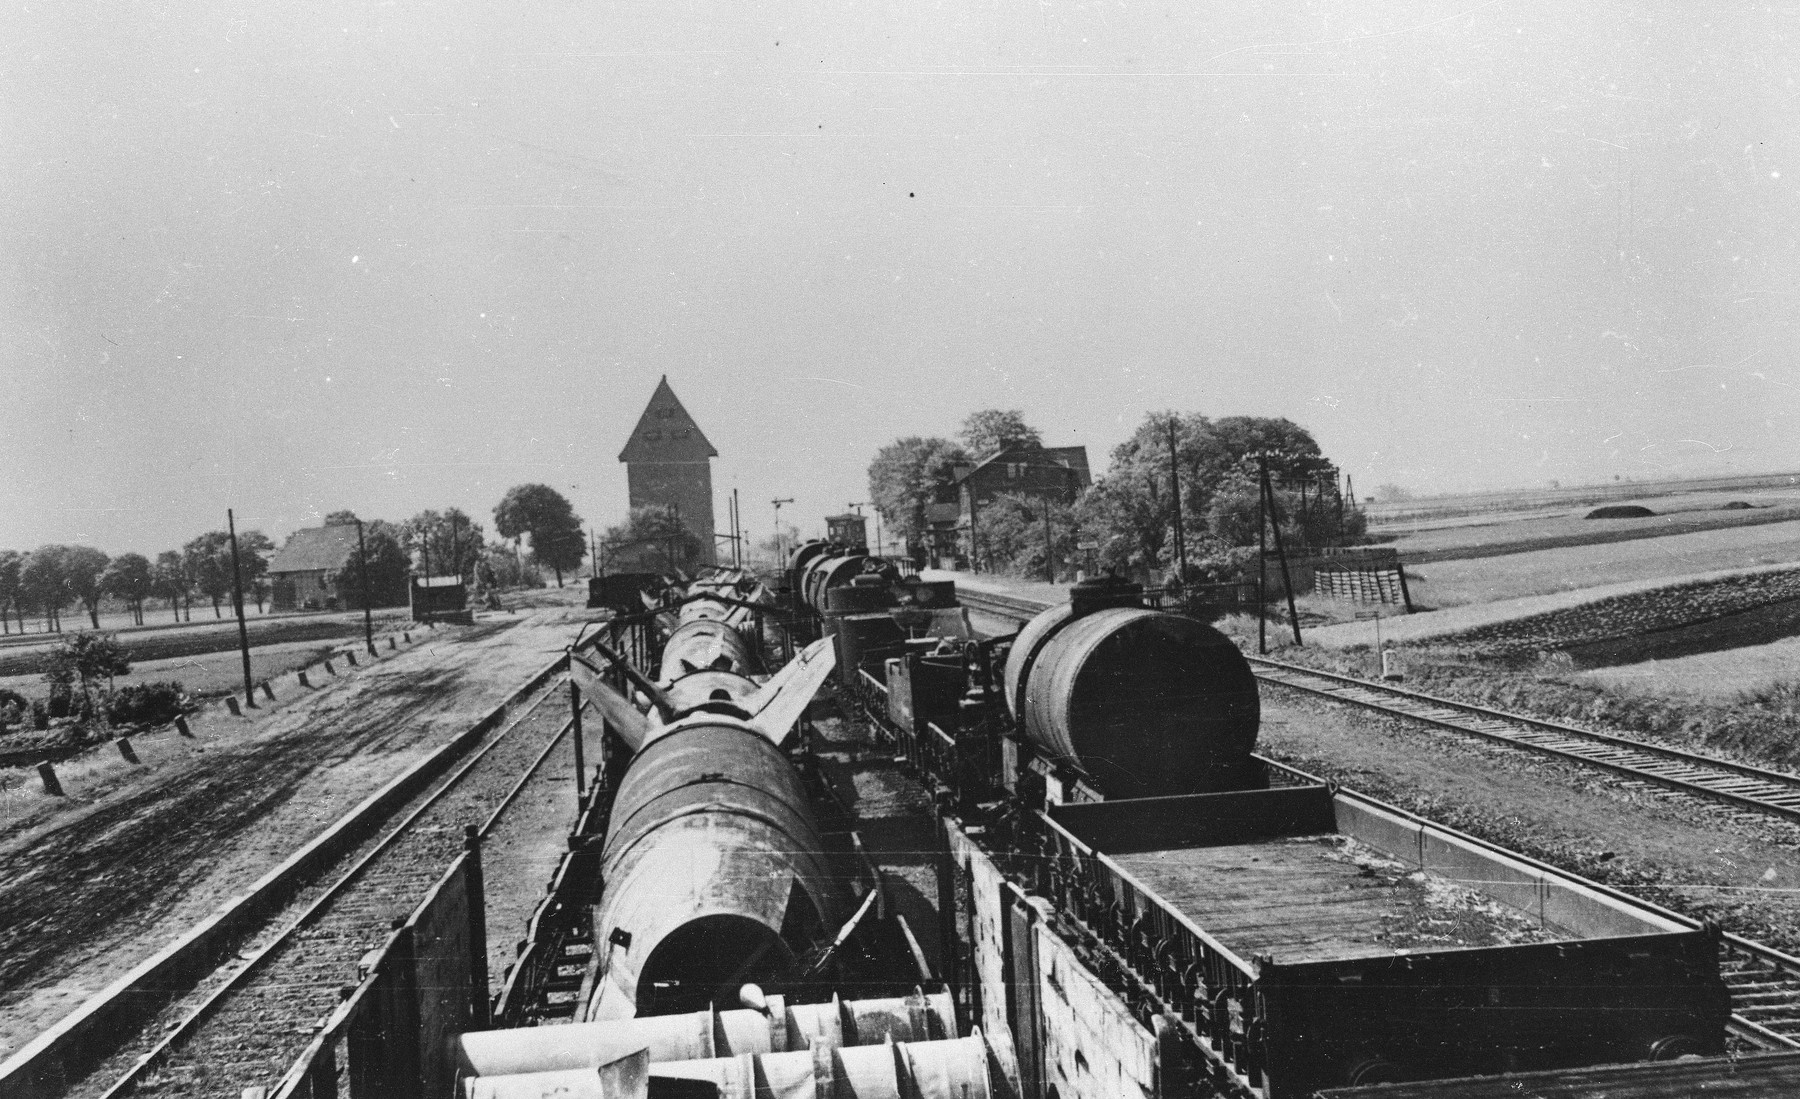 View of a V-2 missile manufactured with the use of slave labor at Dora-Mittelbau.